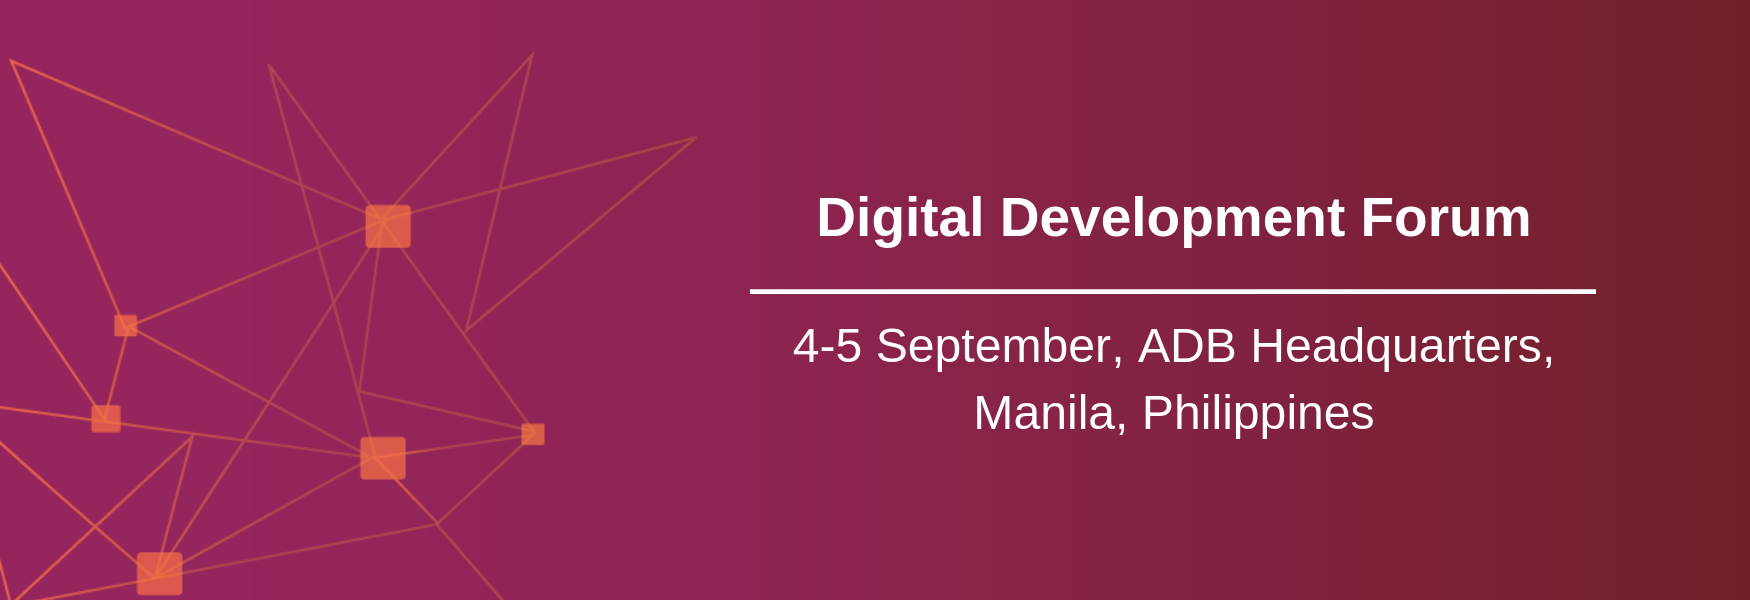 Digital Development Forum